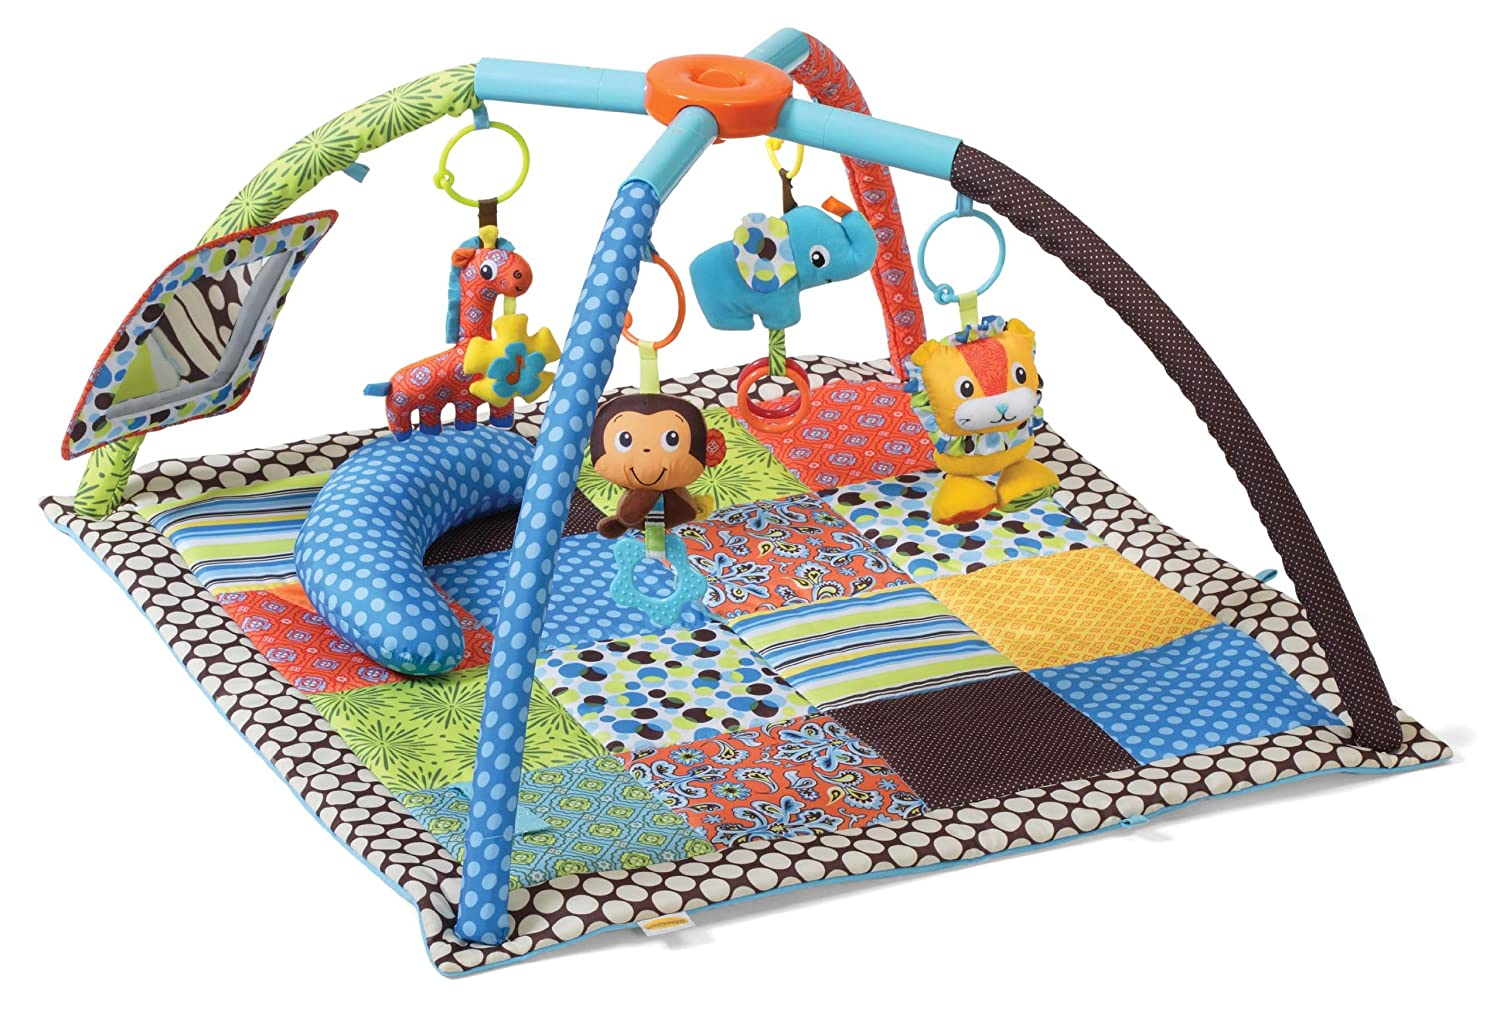 Infantino Twist and Fold Activity Gym Best Baby Play Mat